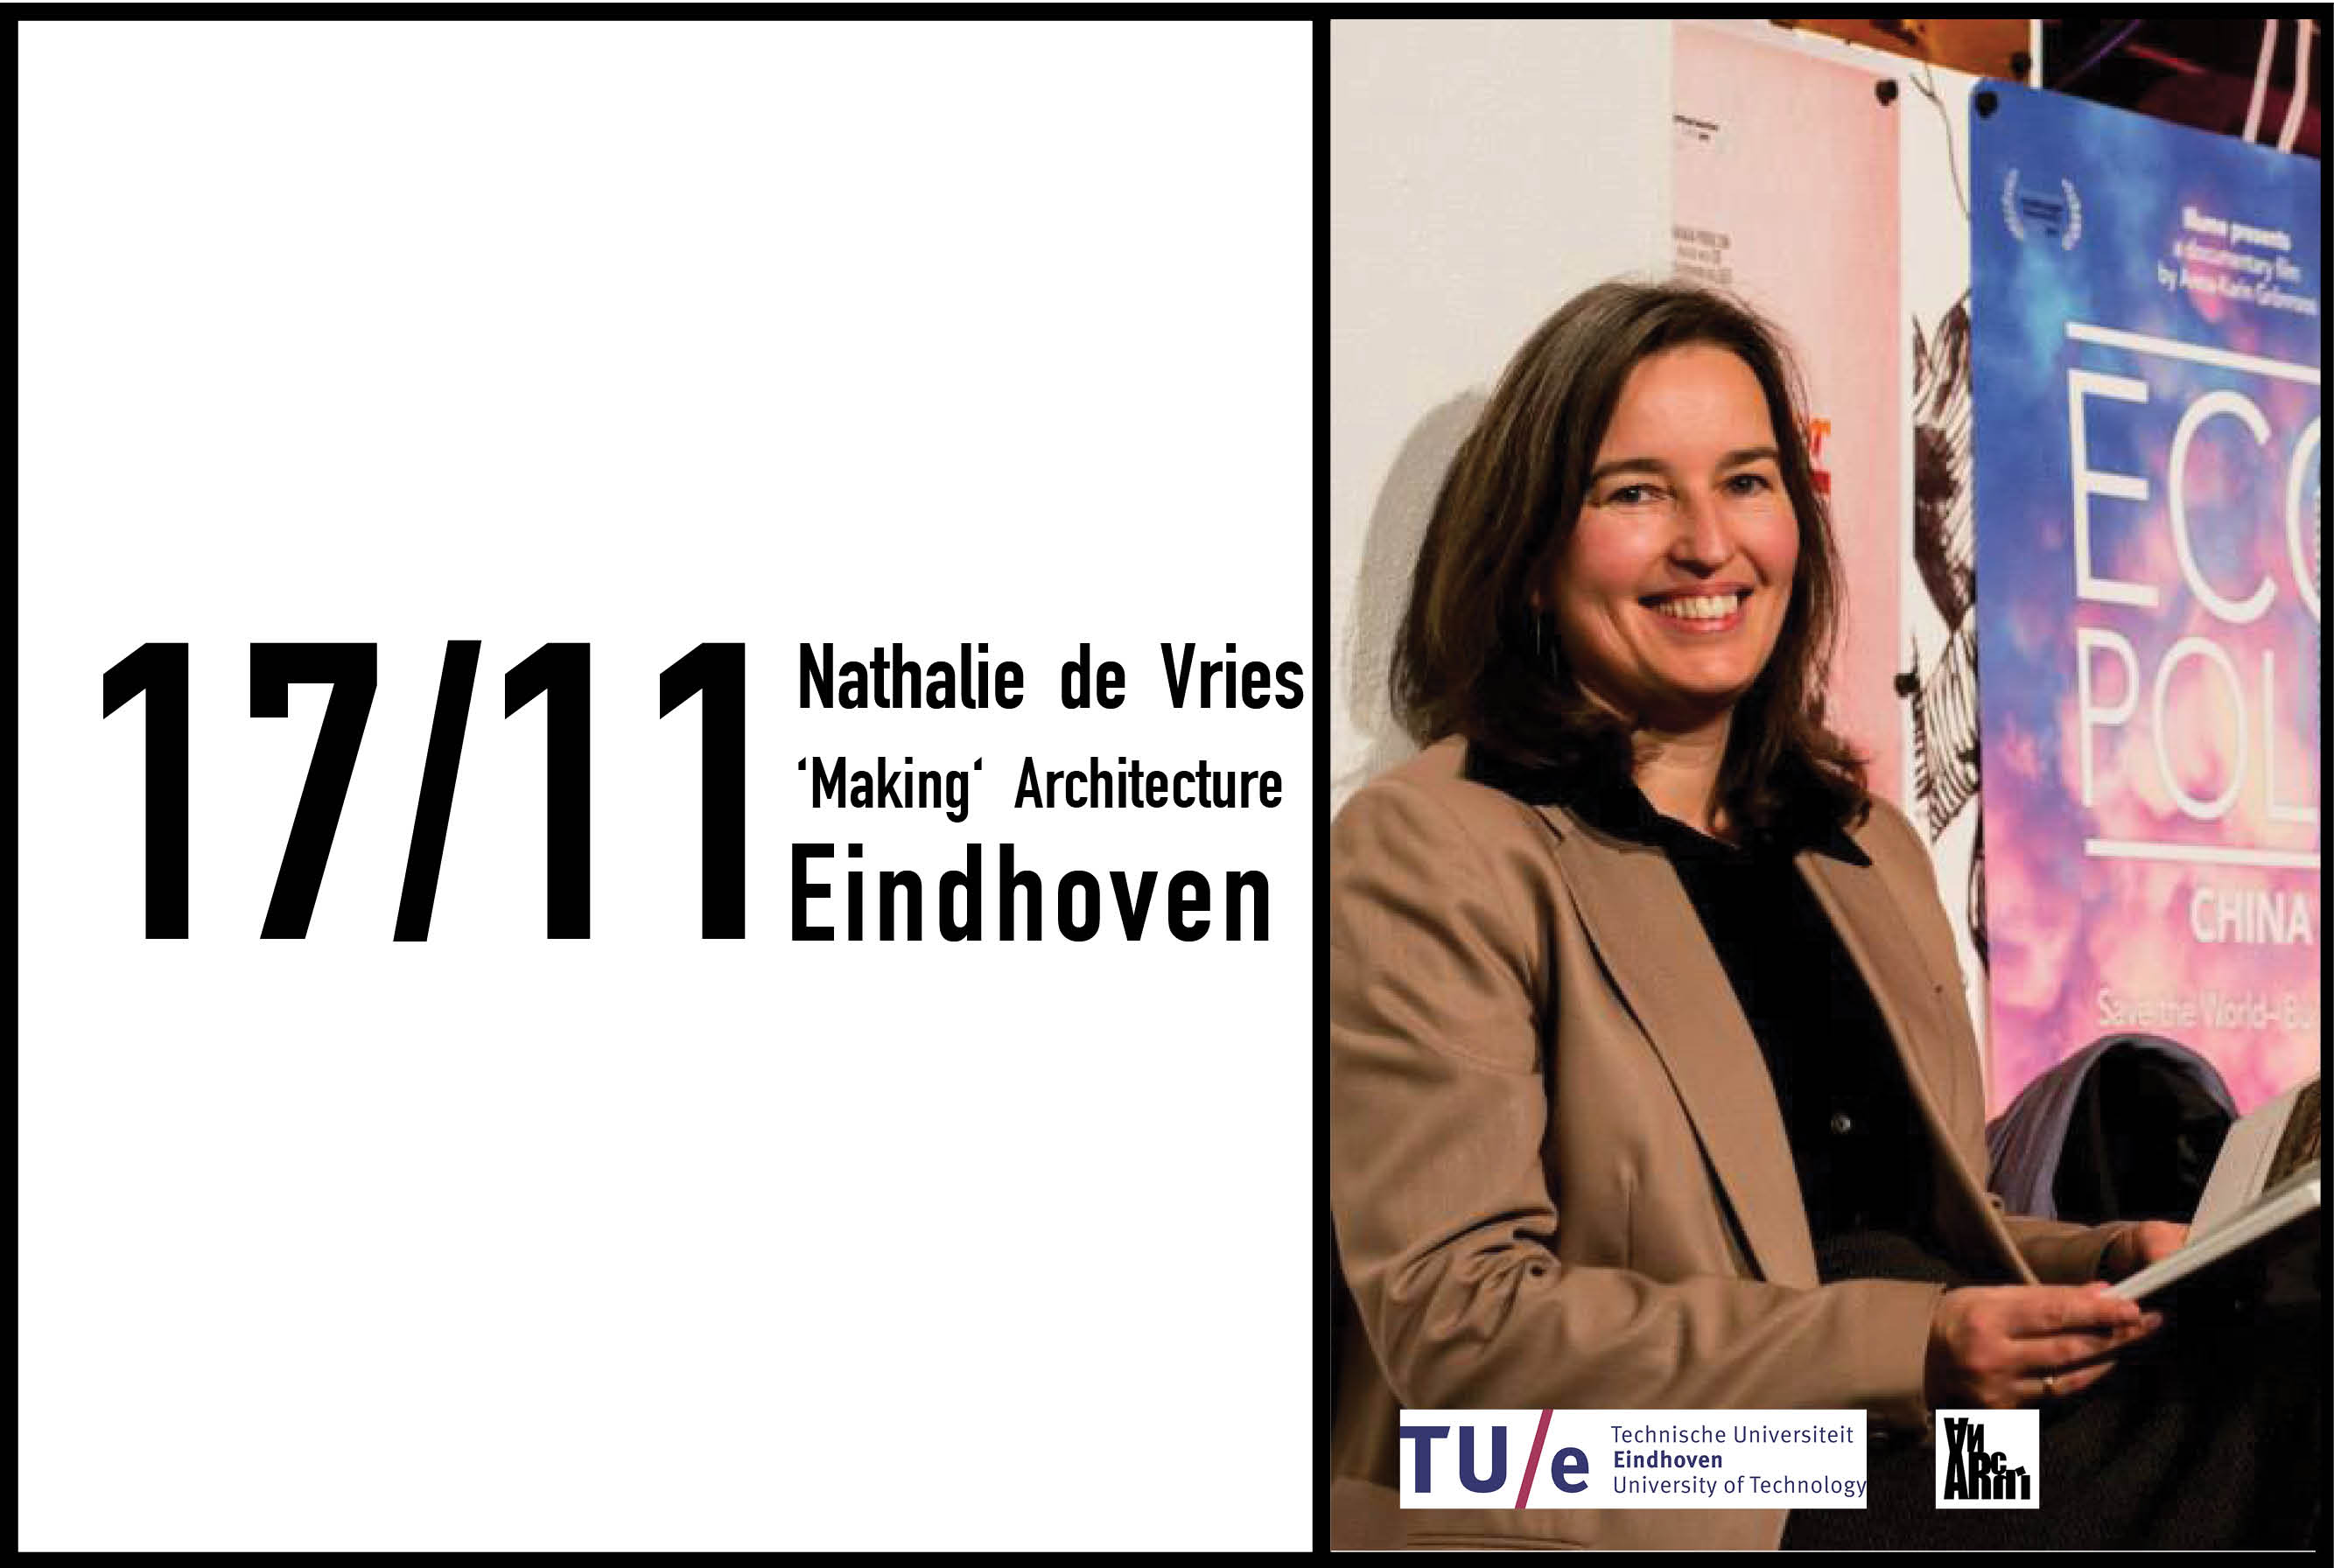 Nathalie de Vries to give double lecture 'Making Architecture' with Willem Jan Neutelings at TU Eindhoven, 17th November 2016